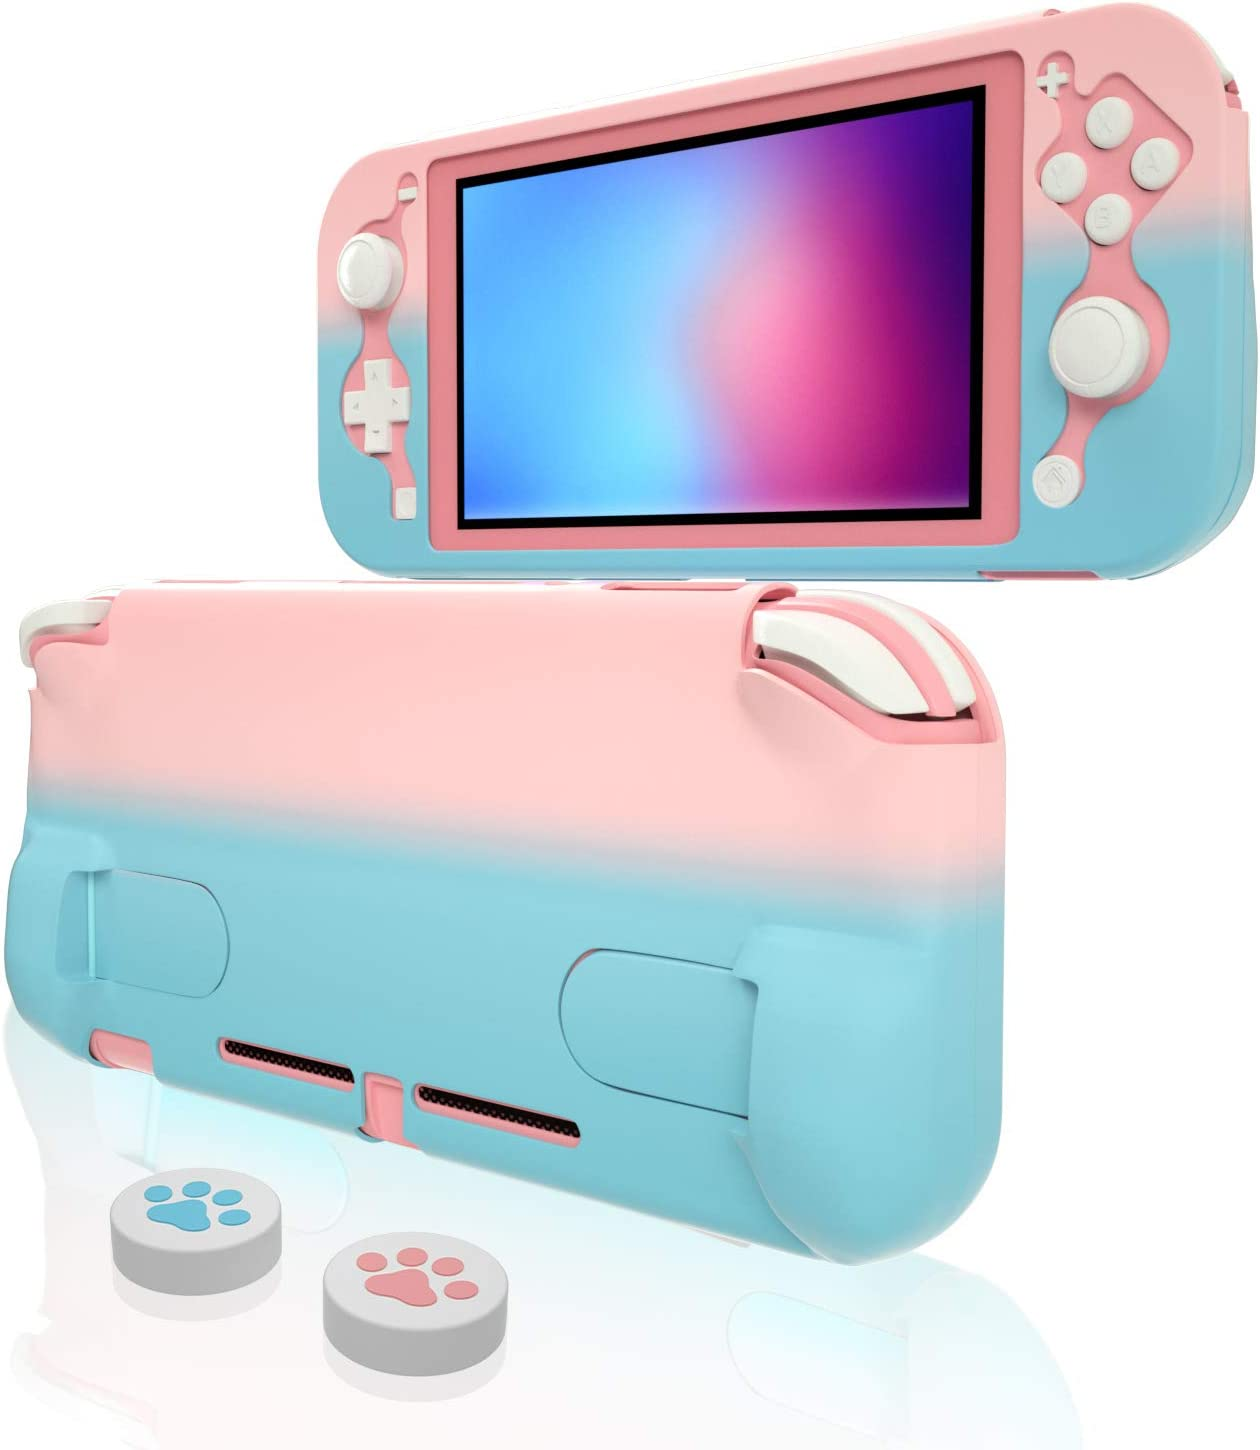 Protective Case for Nintendo Switch lite, Hard Case for Nintendo Switch lite - Pink Blue